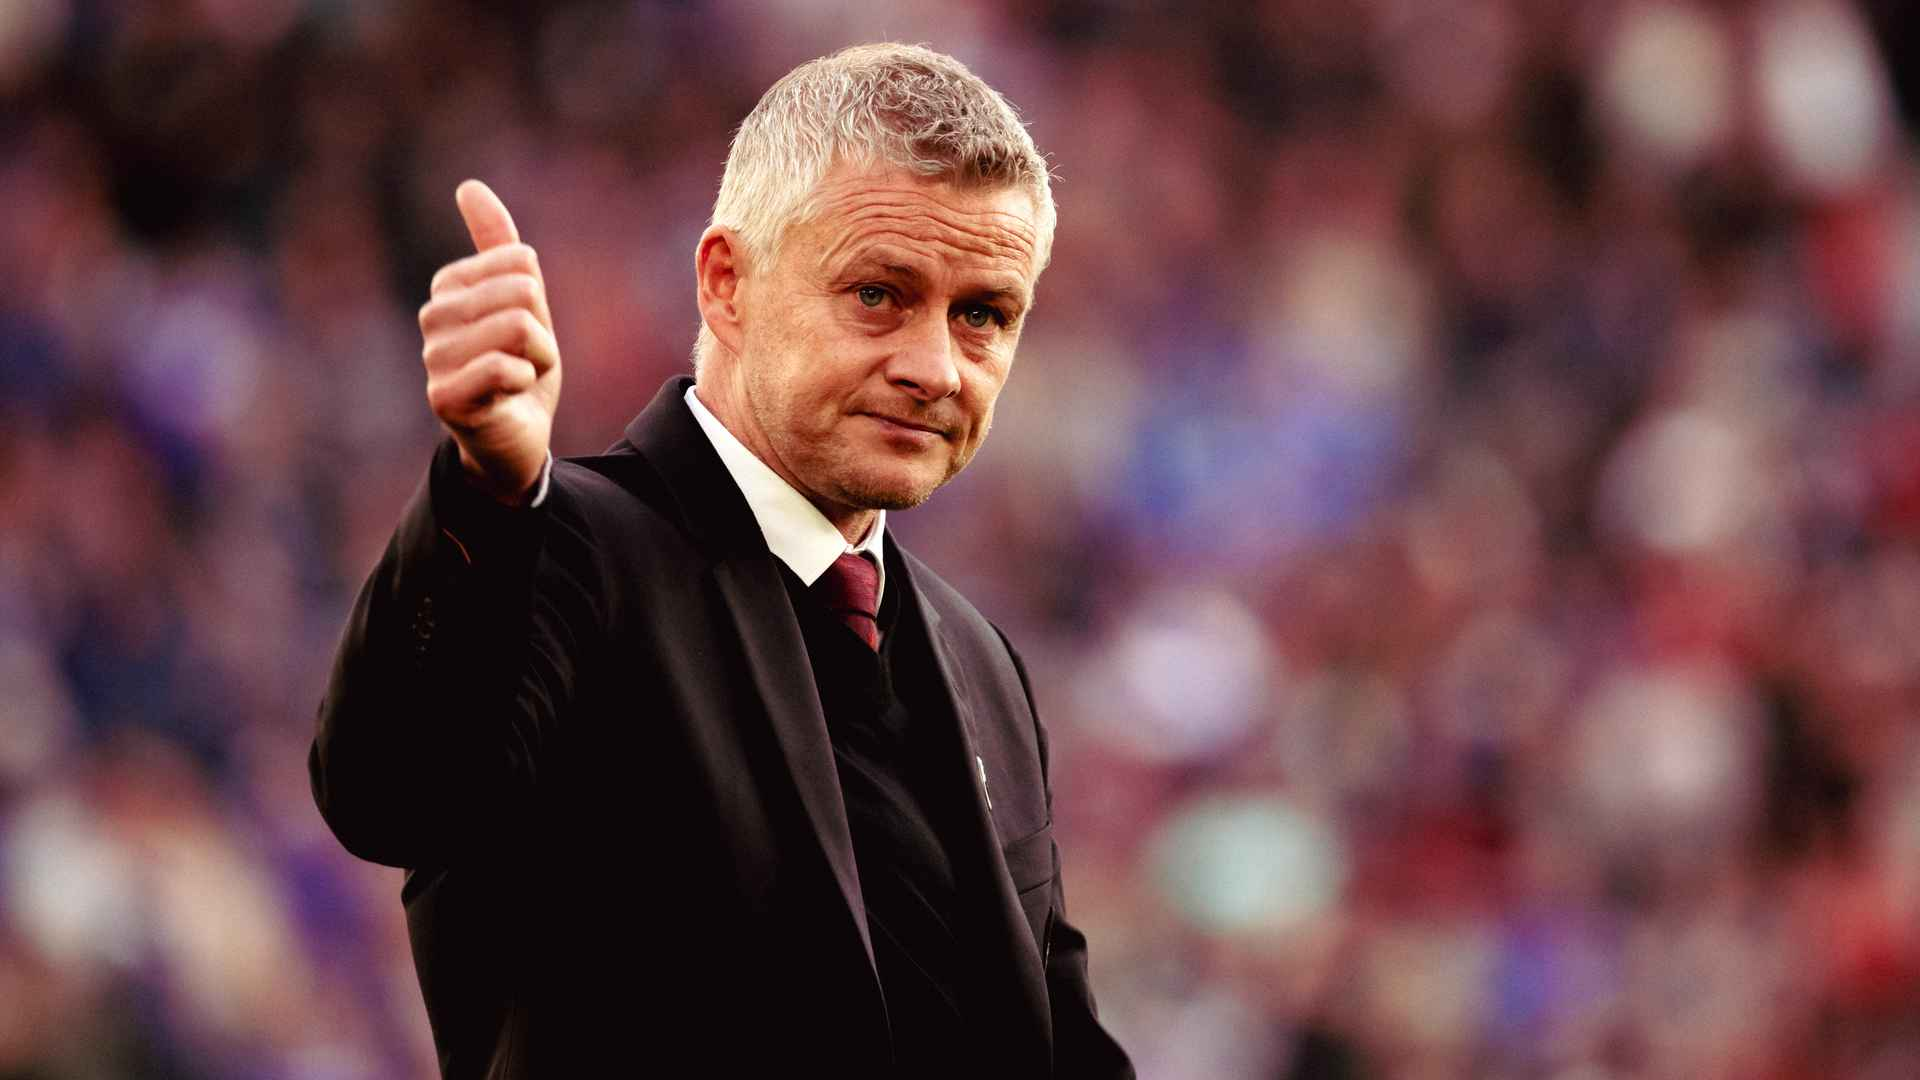 Solskjaer: We need to sort this out